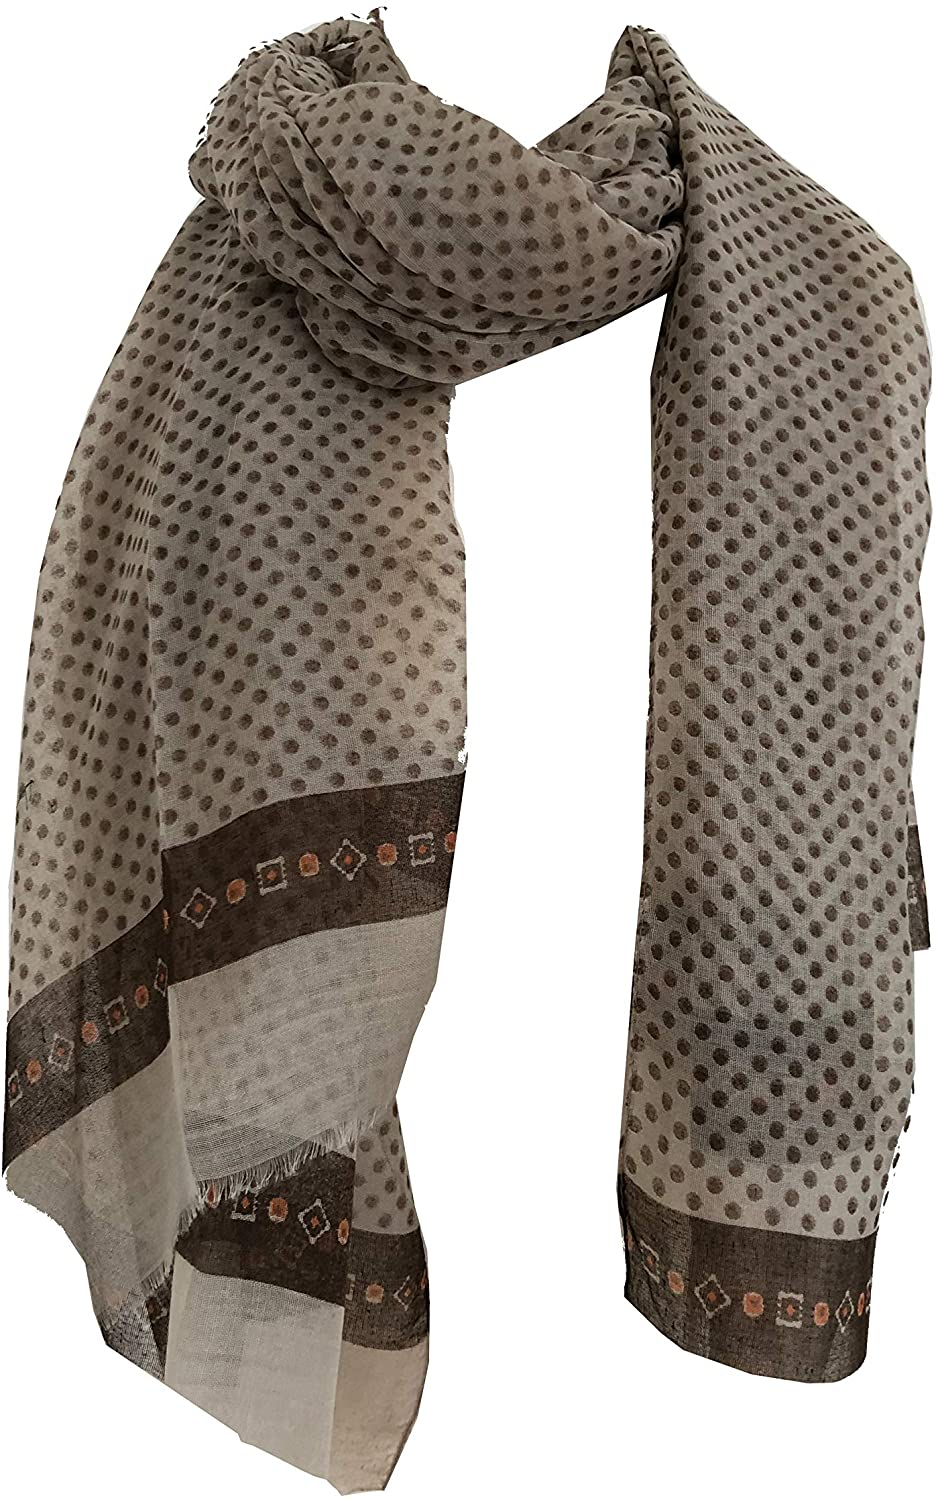 Pamper Yourself Now Light Brown Scarf with Dark Brown Spotty Scarves with Borders, Long, Soft, Pretty Scarf/Wrap